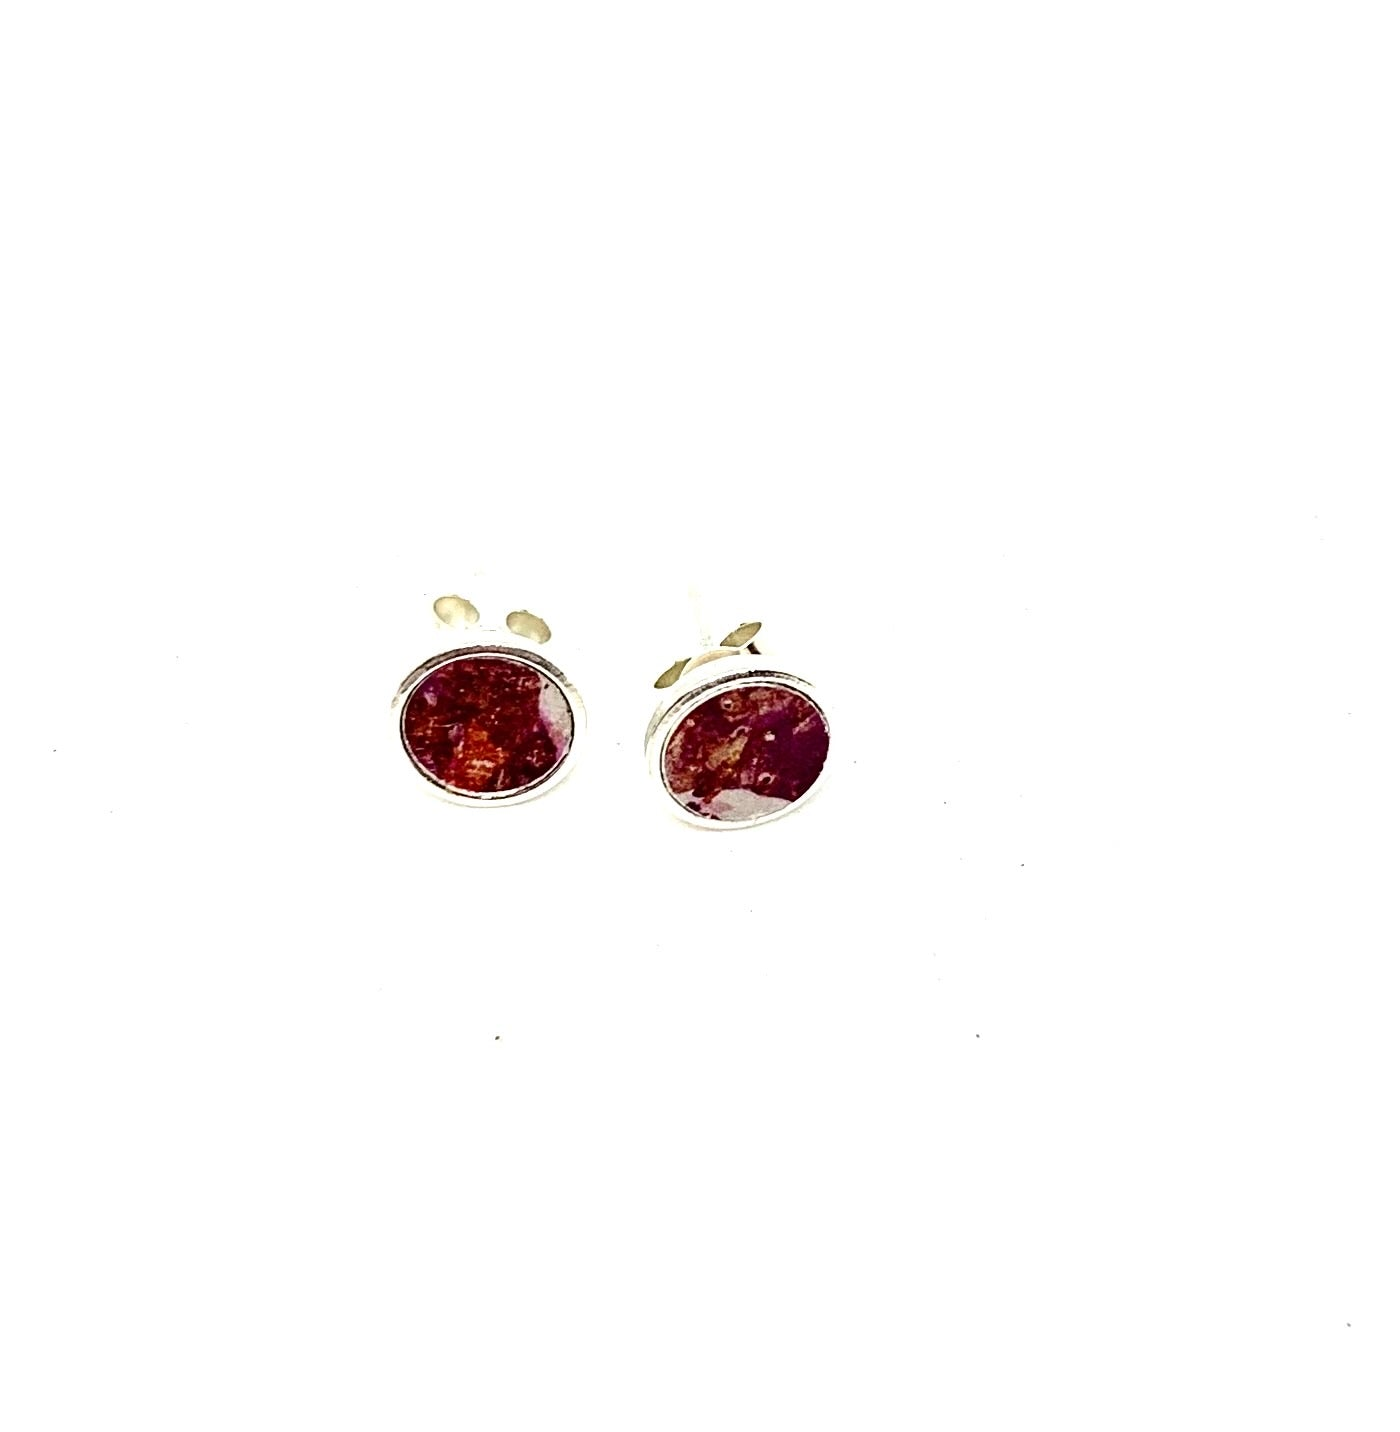 Unique jewellery by Rachel Sowe - textile anodised aluminium coloured stud earrings - perfect gift for birthdays and anniversaries